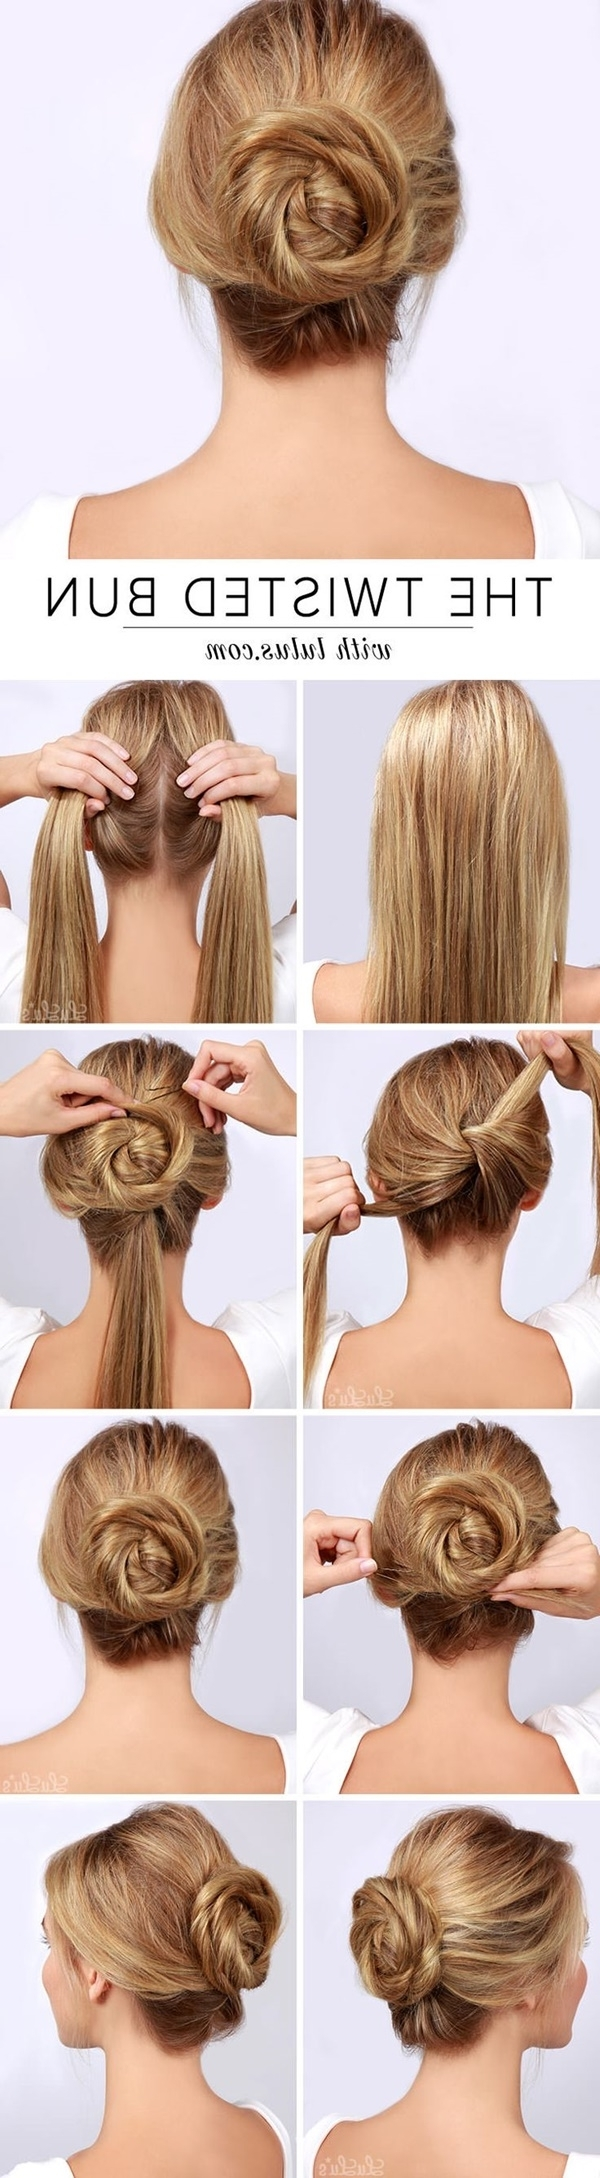 101 Cute & Easy Bun Hairstyles For Long Hair And Medium Hair For Easy Updo Hairstyles For Medium Hair To Do Yourself (View 12 of 15)